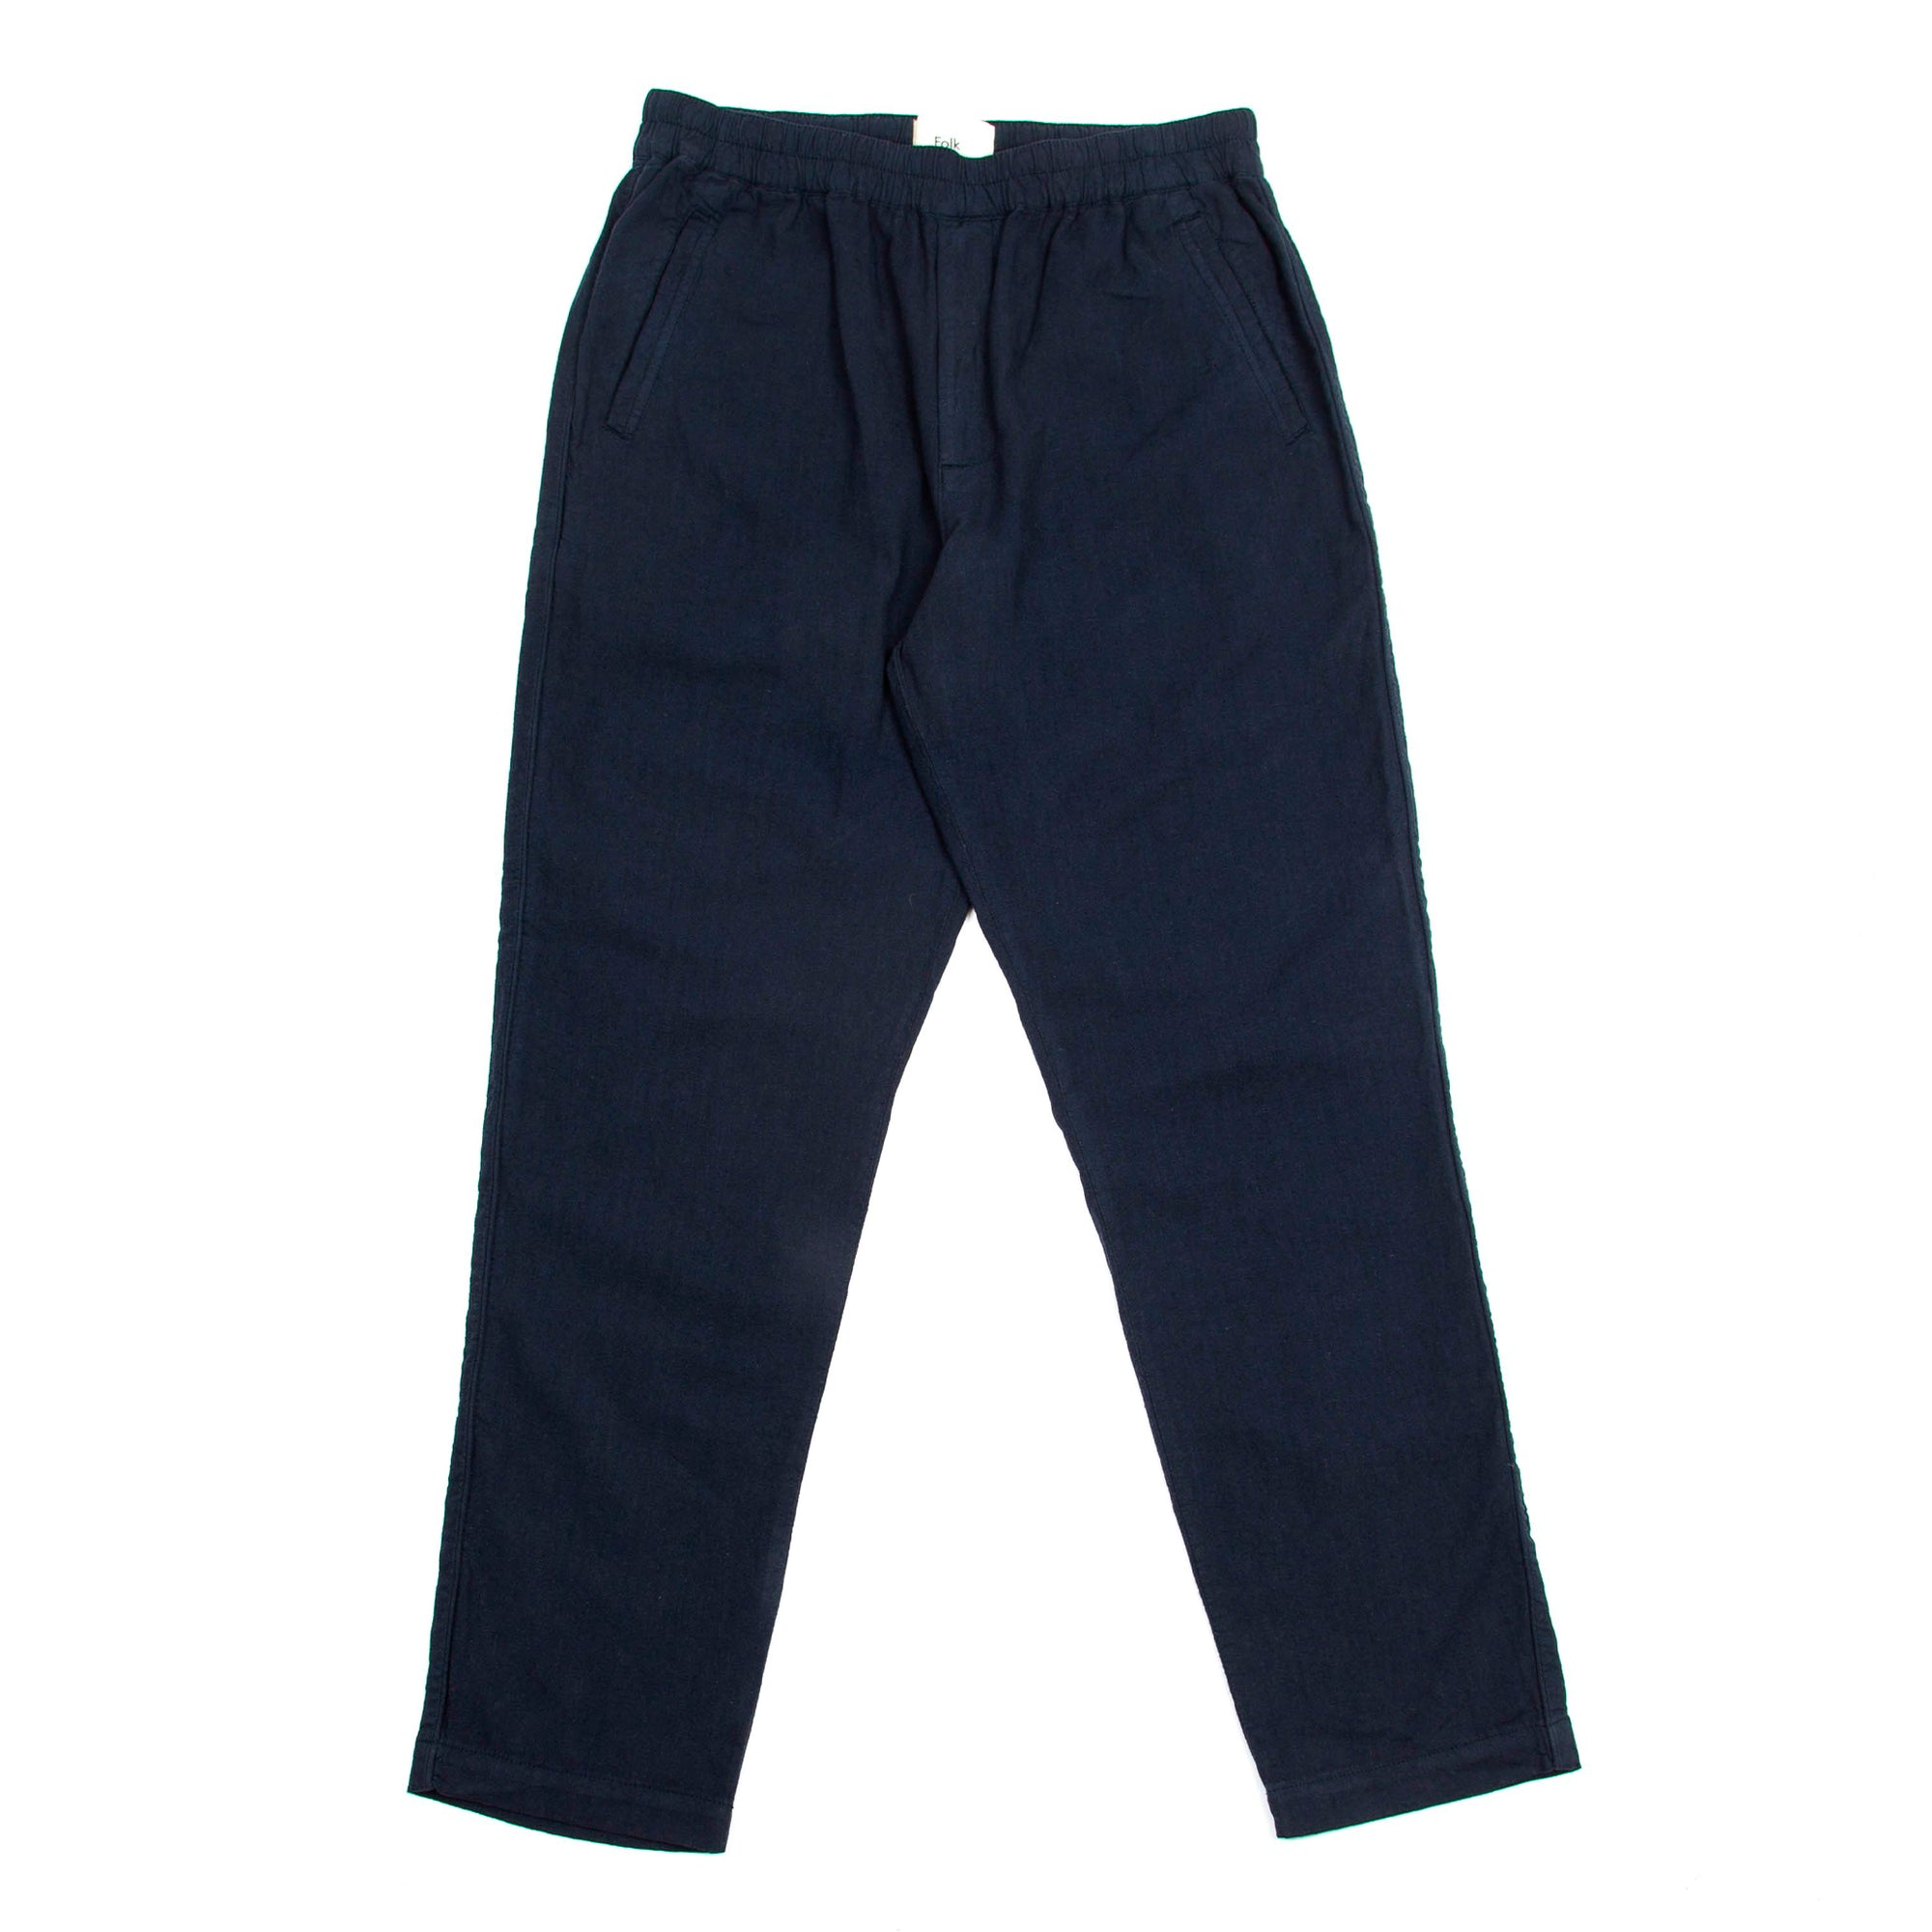 Folk Cotton Linen Trousers: Navy - The Union Project